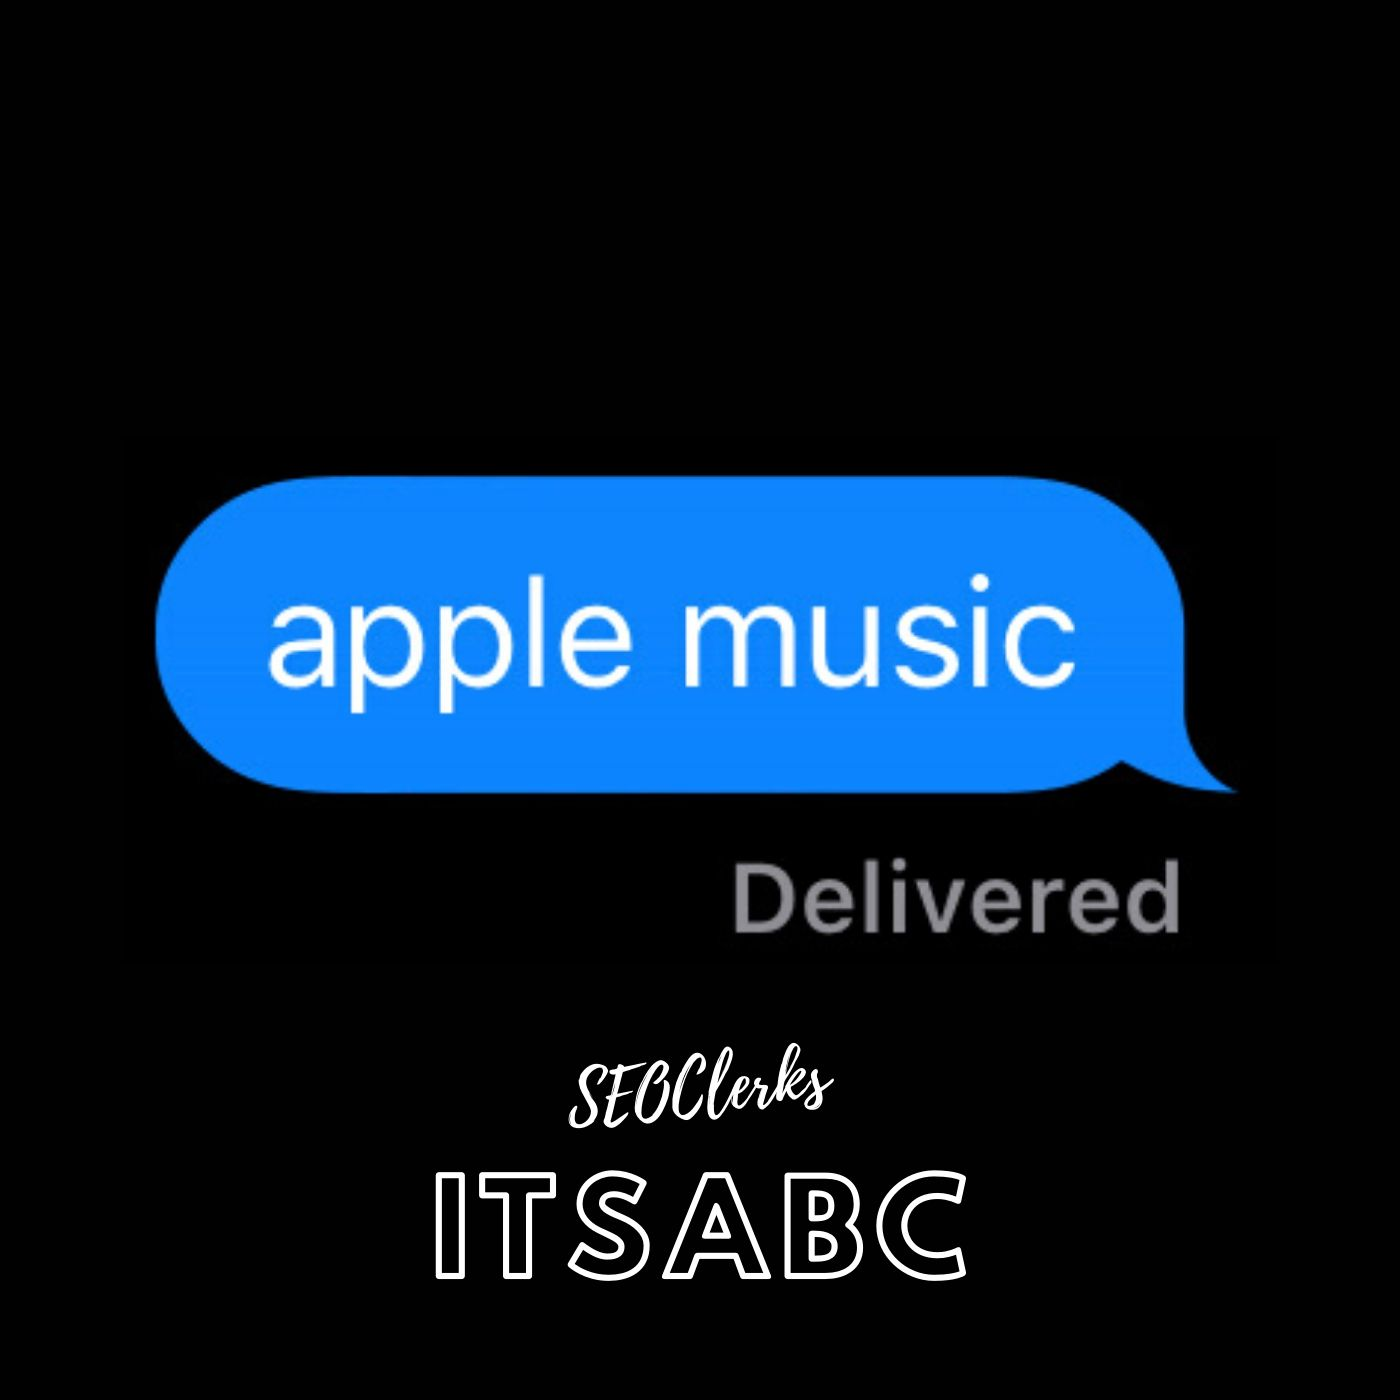 Apple Music streaming promotion for musicians playlist/album